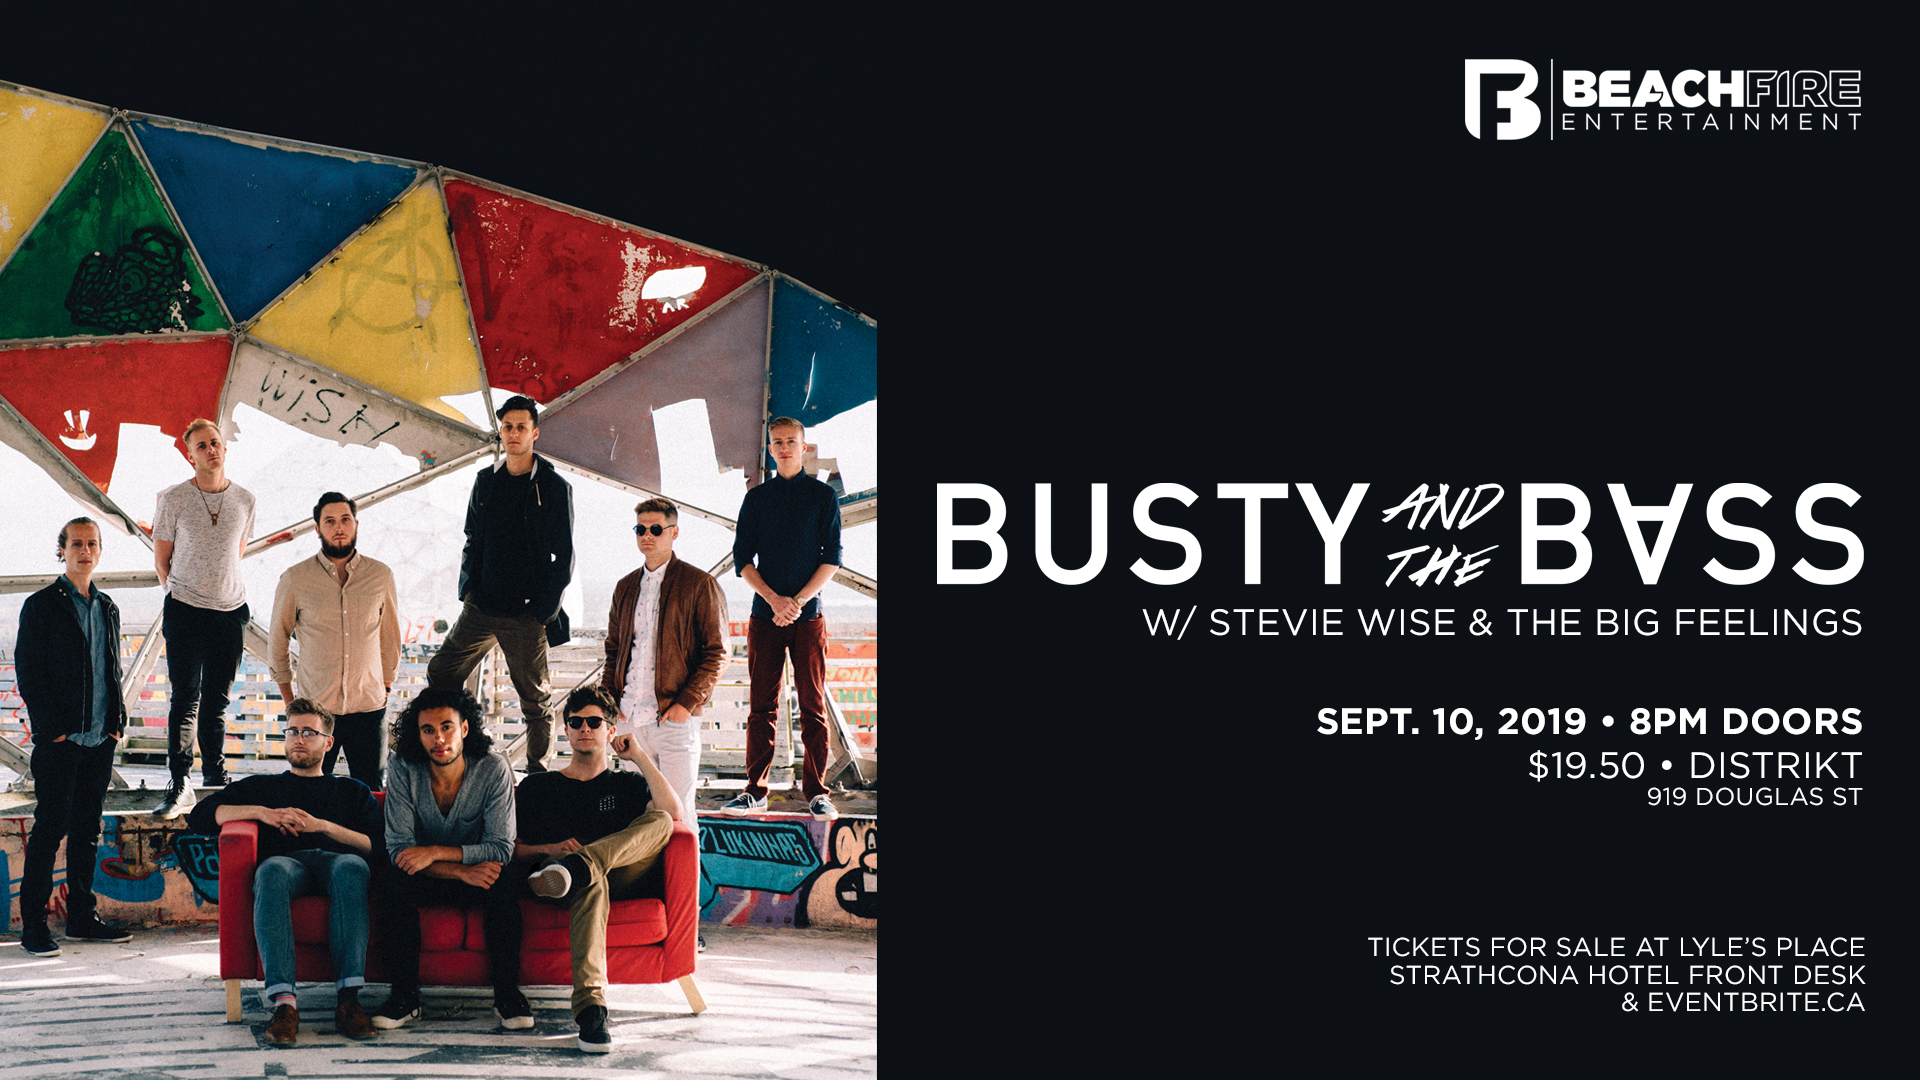 Busty And The Bass September 10, 2019 | Distrikt